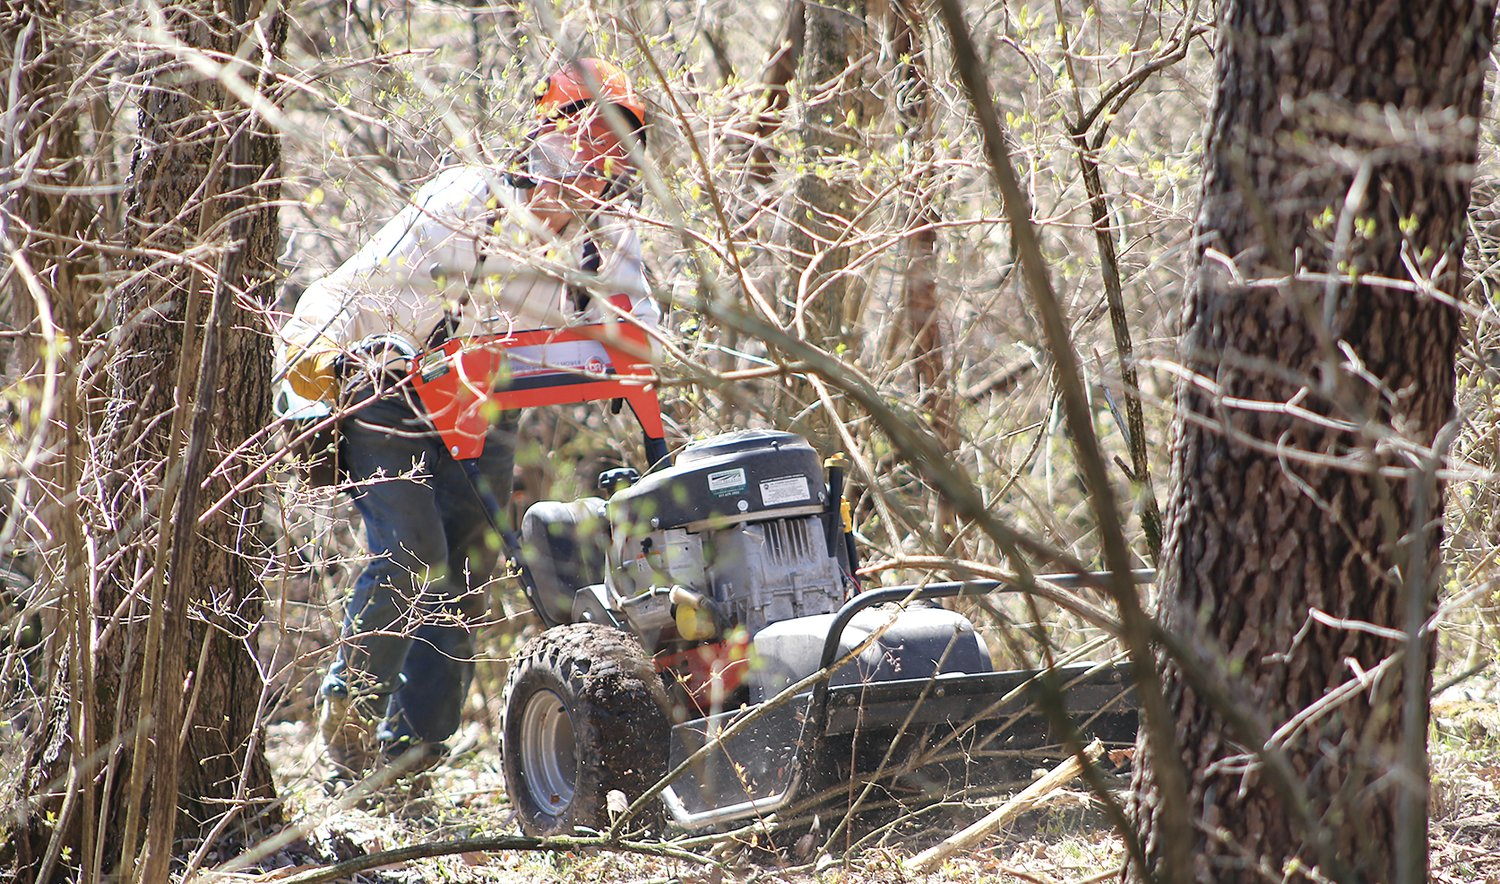 Bill Hunyadi of Plainview uses a brush mower to clear undergrowth Wednesday for a savanna area north of the barn at Bremer Sanctuary in Hillsboro.